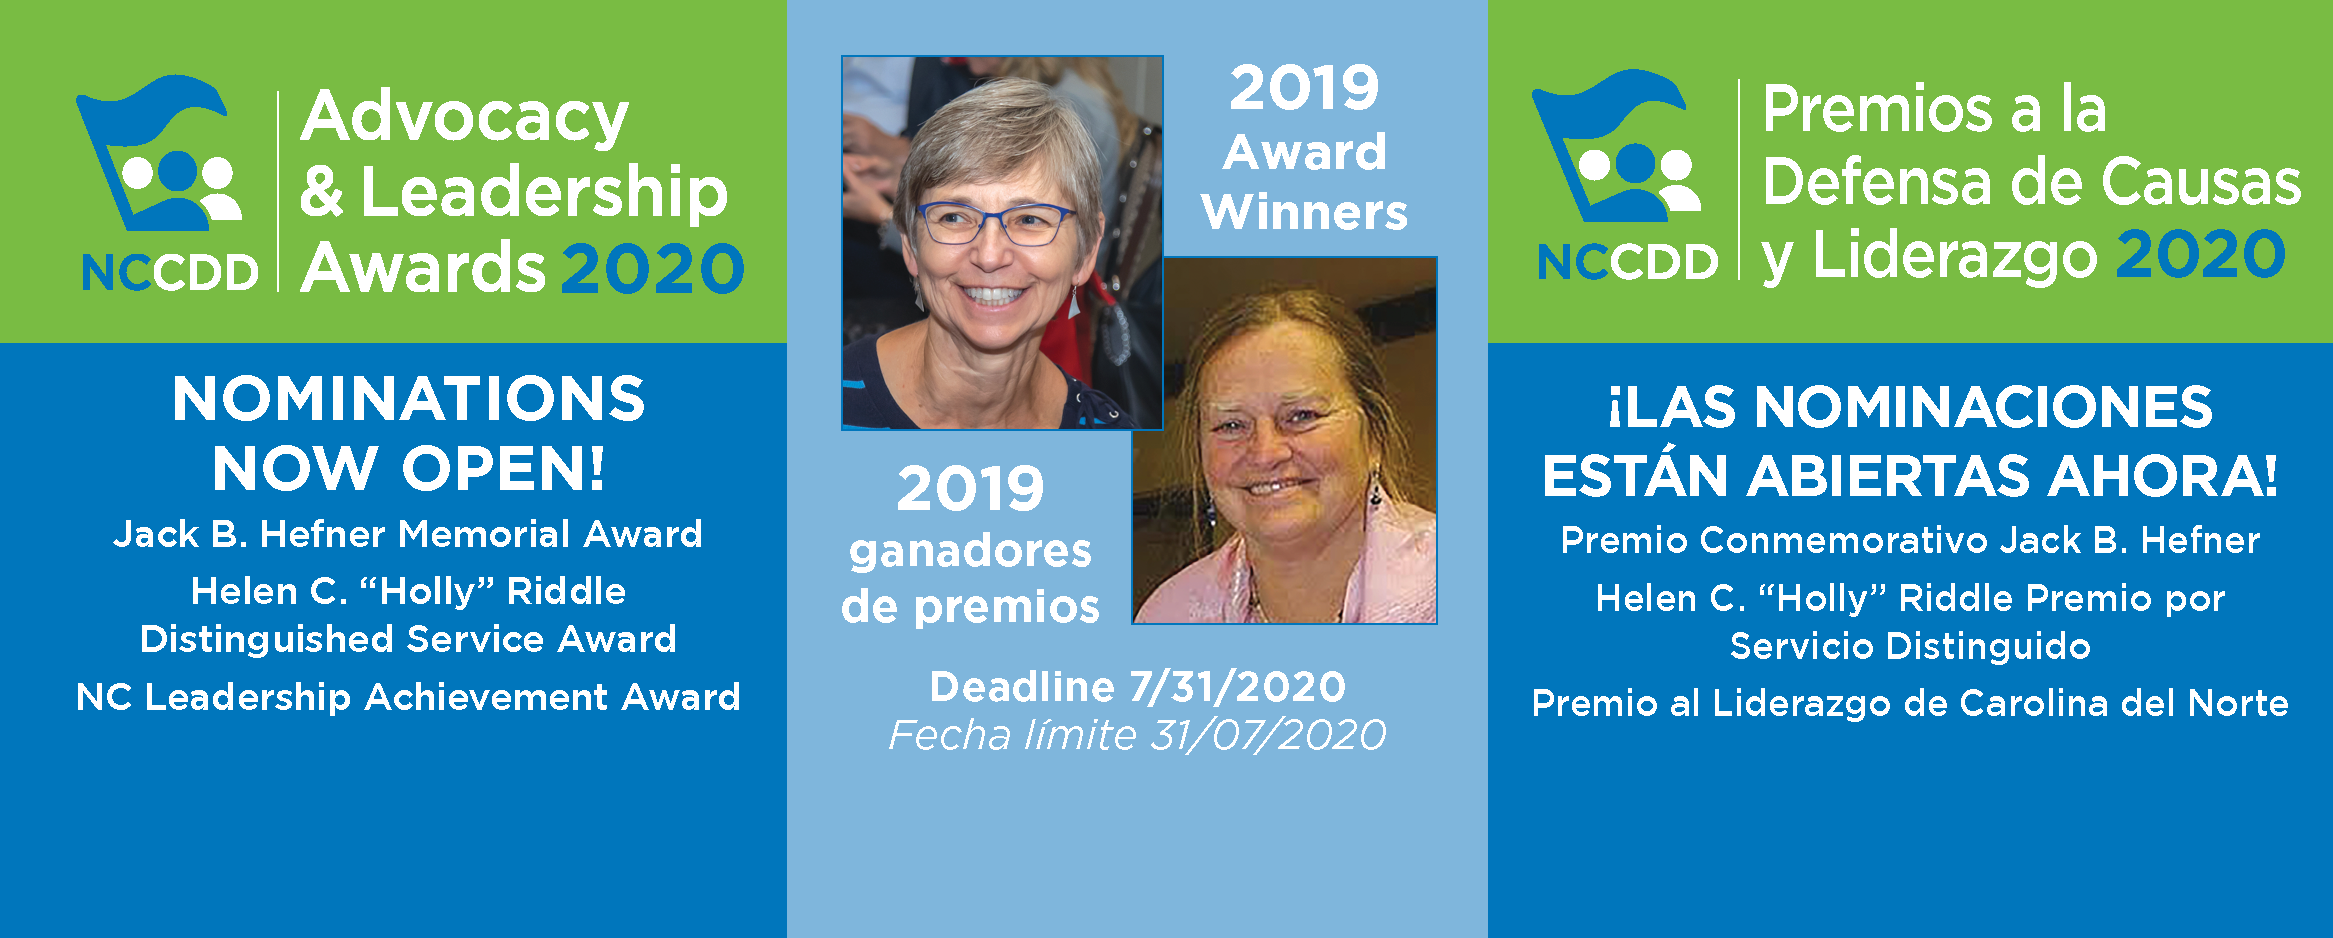 Advocacy and Leadership Awards Nominations Open in English & Spanish. Deadline July 31, 2020.